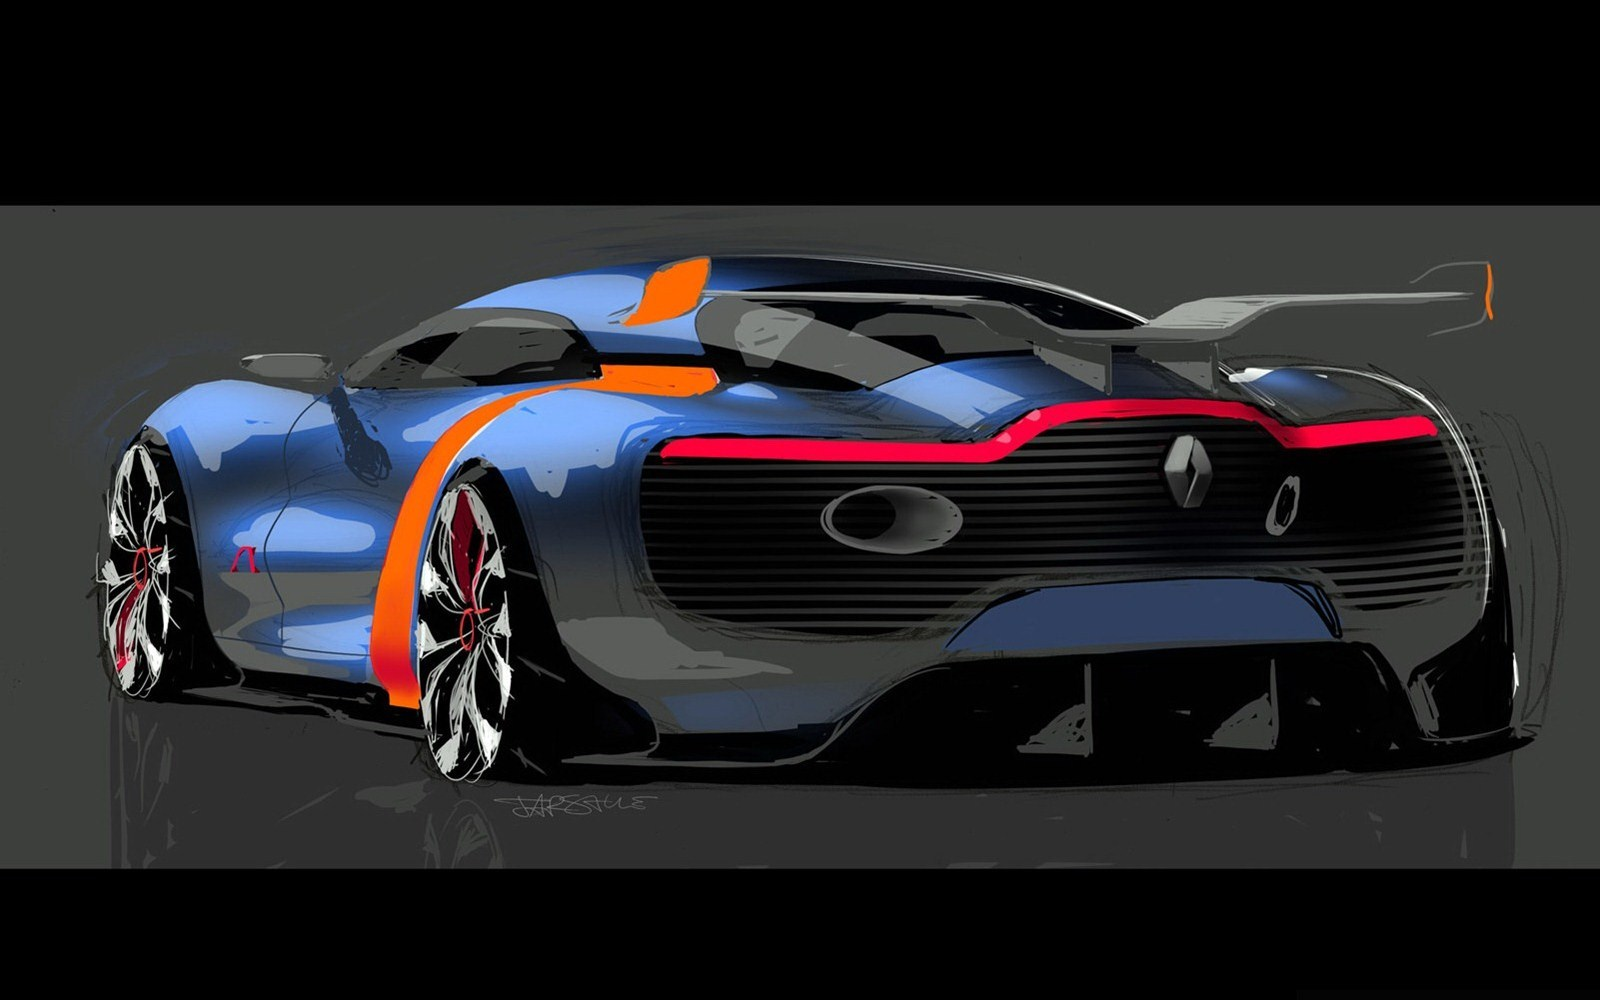 Who Is Coming Out With New Suv In 2015 | Autos Post